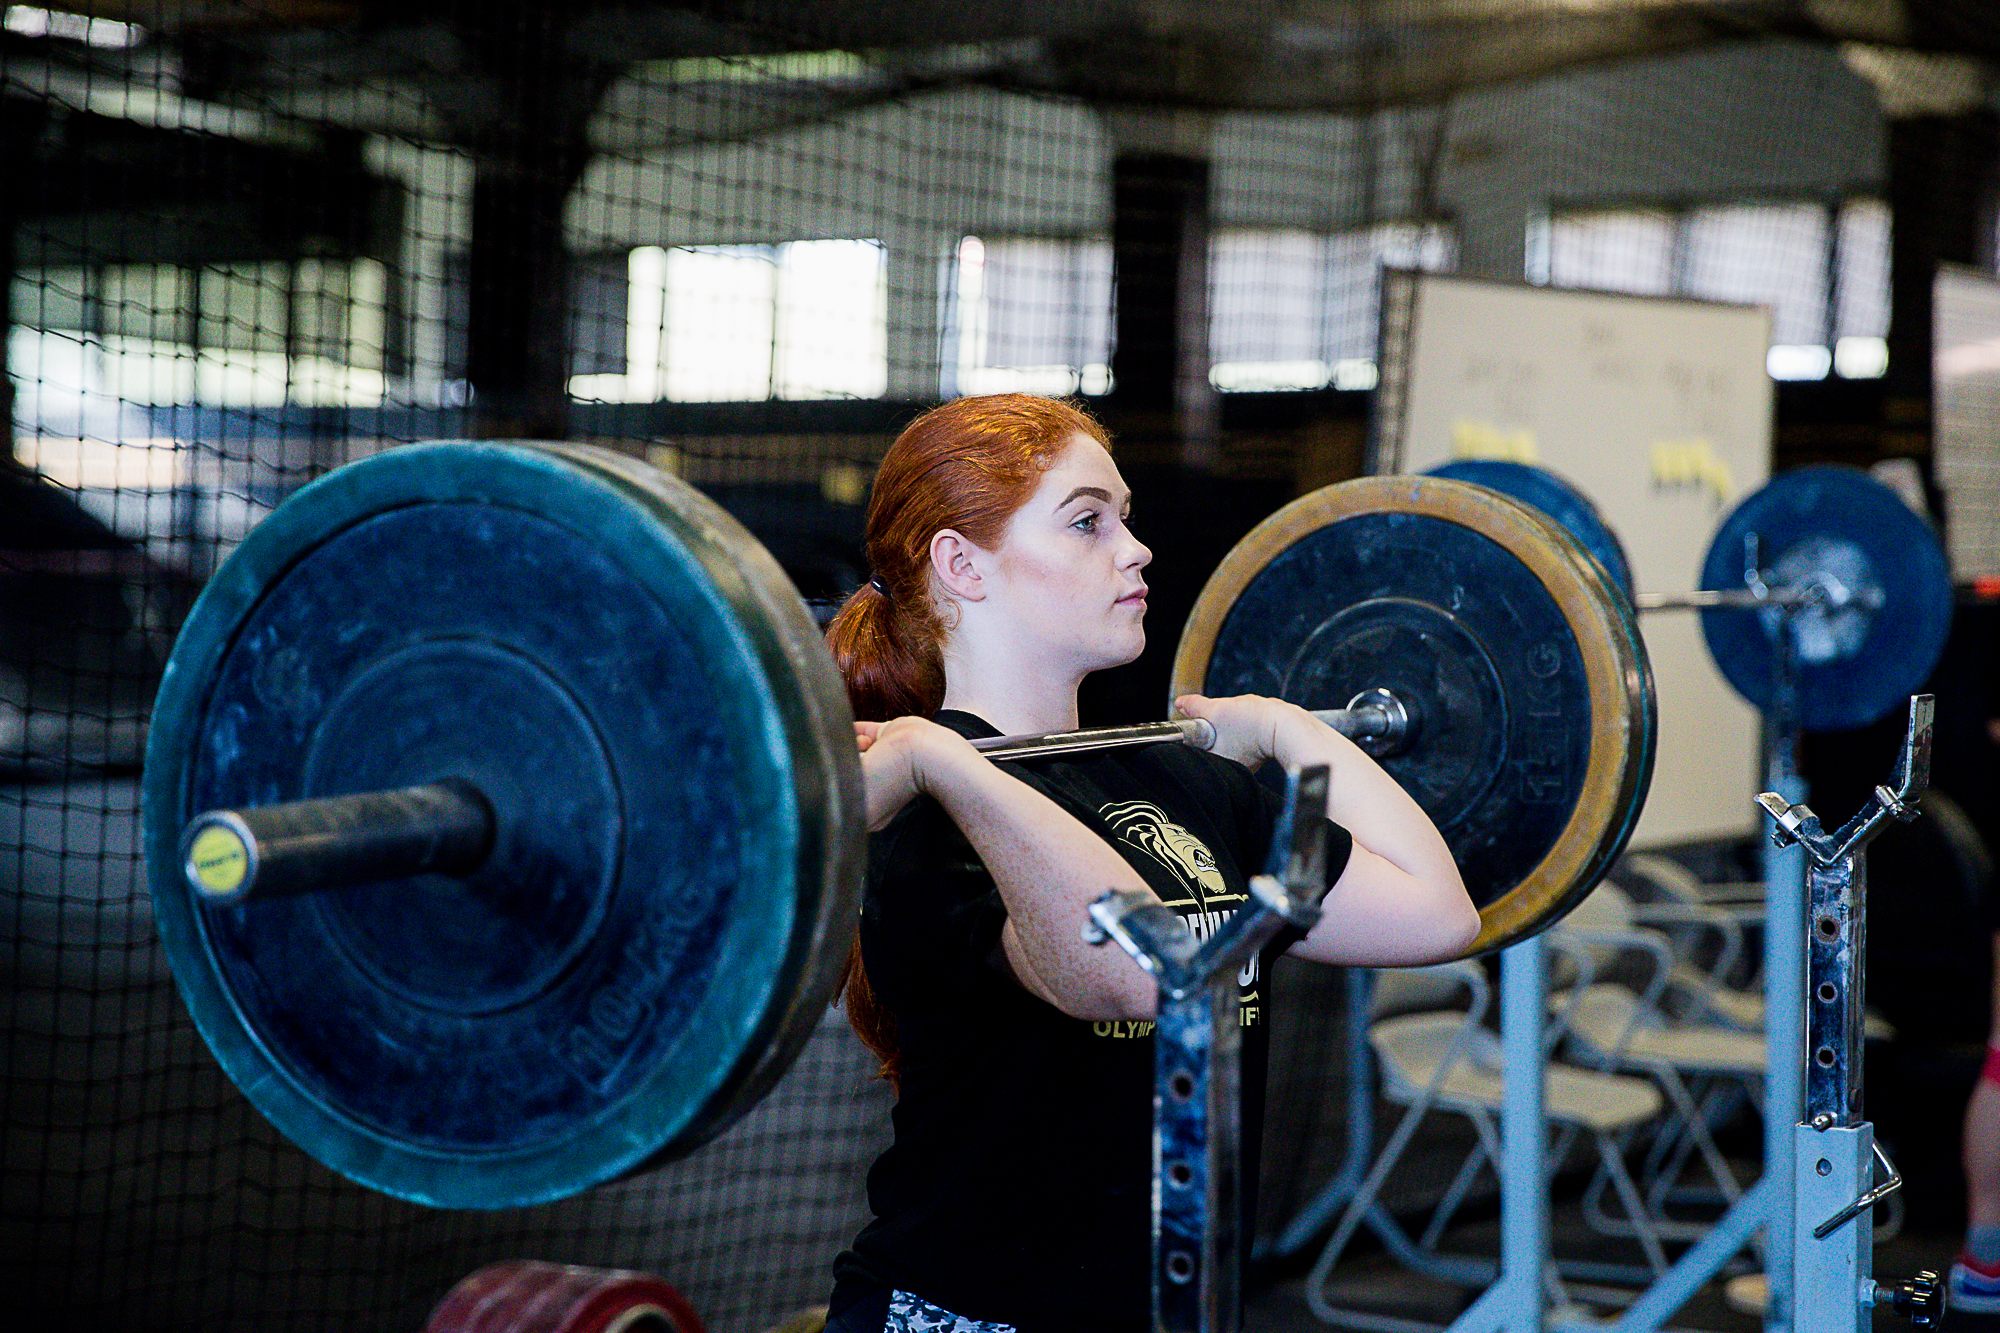 small-moments-weightlifting-photos-by-viviana-podhaiski.jpg